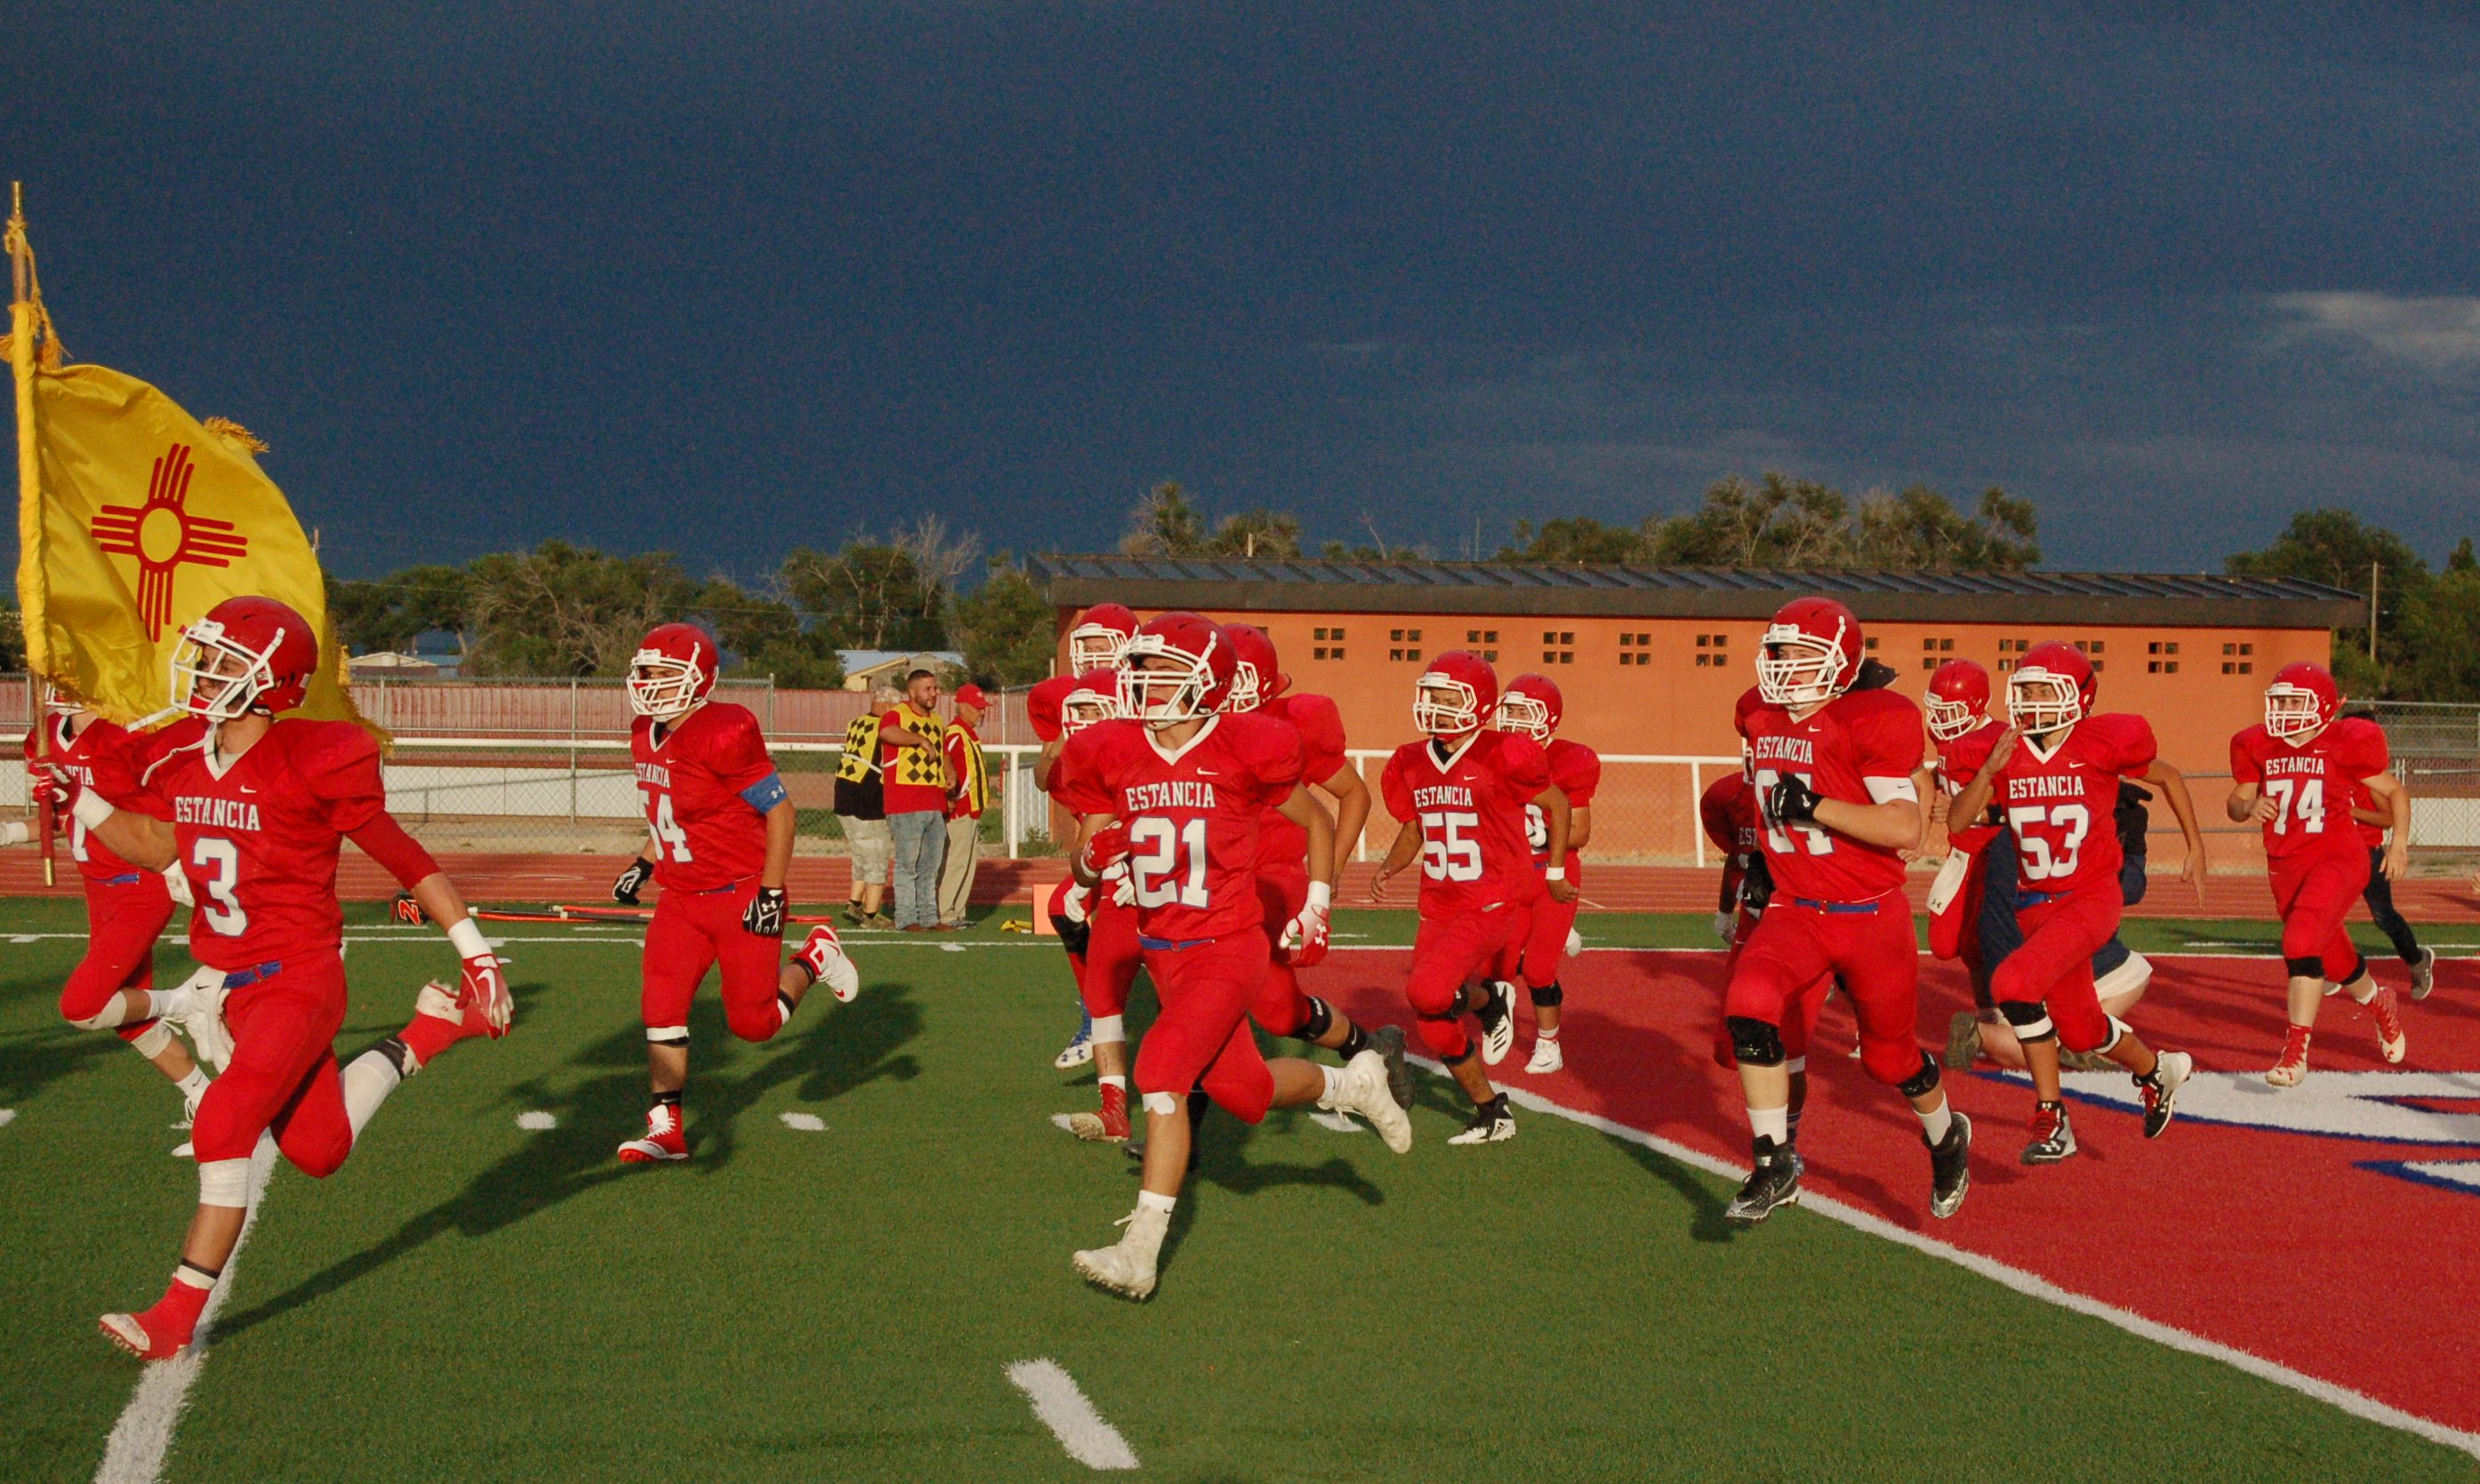 Estancia Bears fall to Hatch Valley Bears in season opener